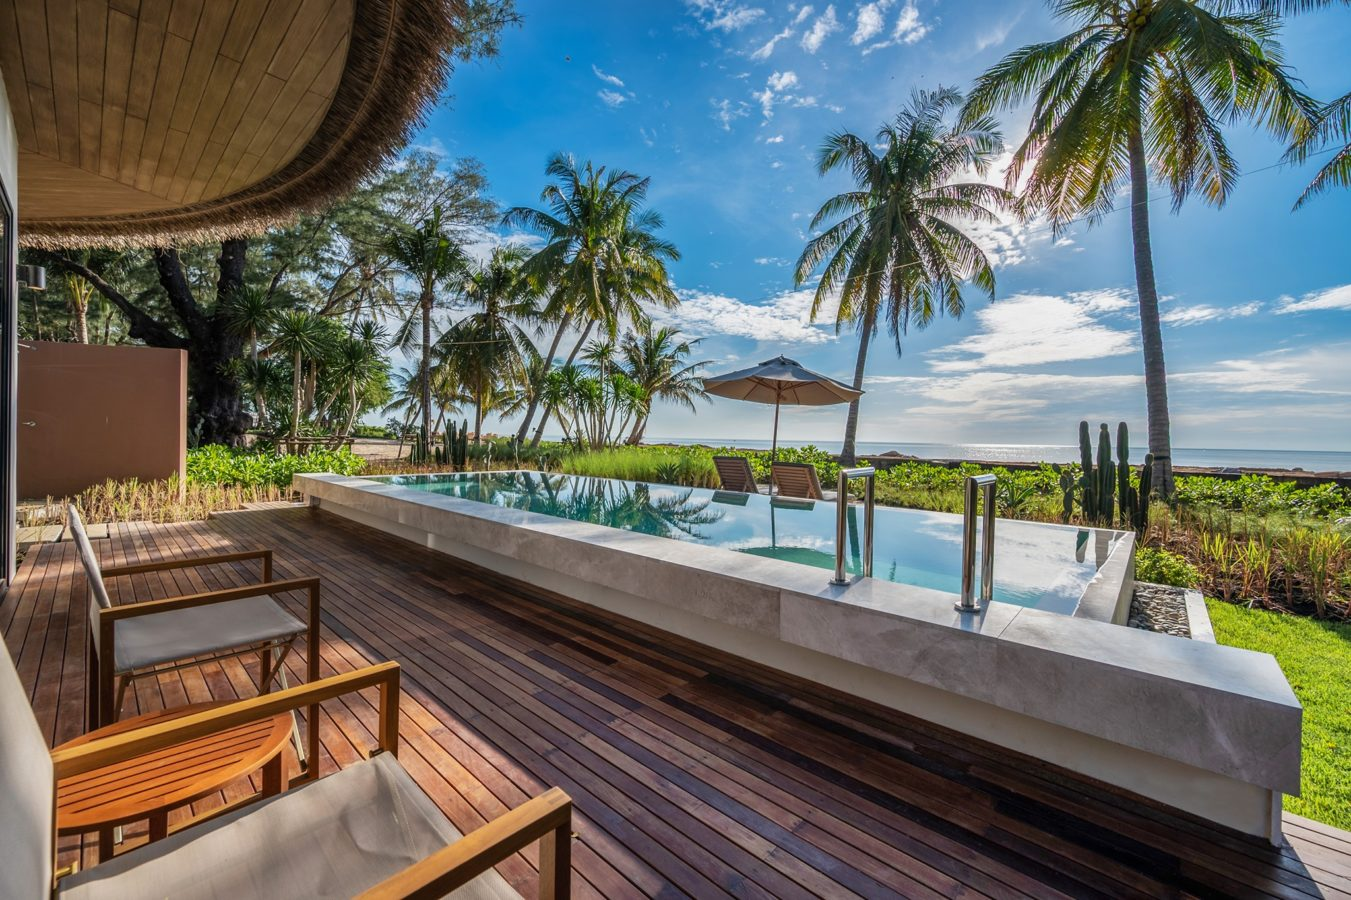 The best long-stay hotel deals in Hua Hin